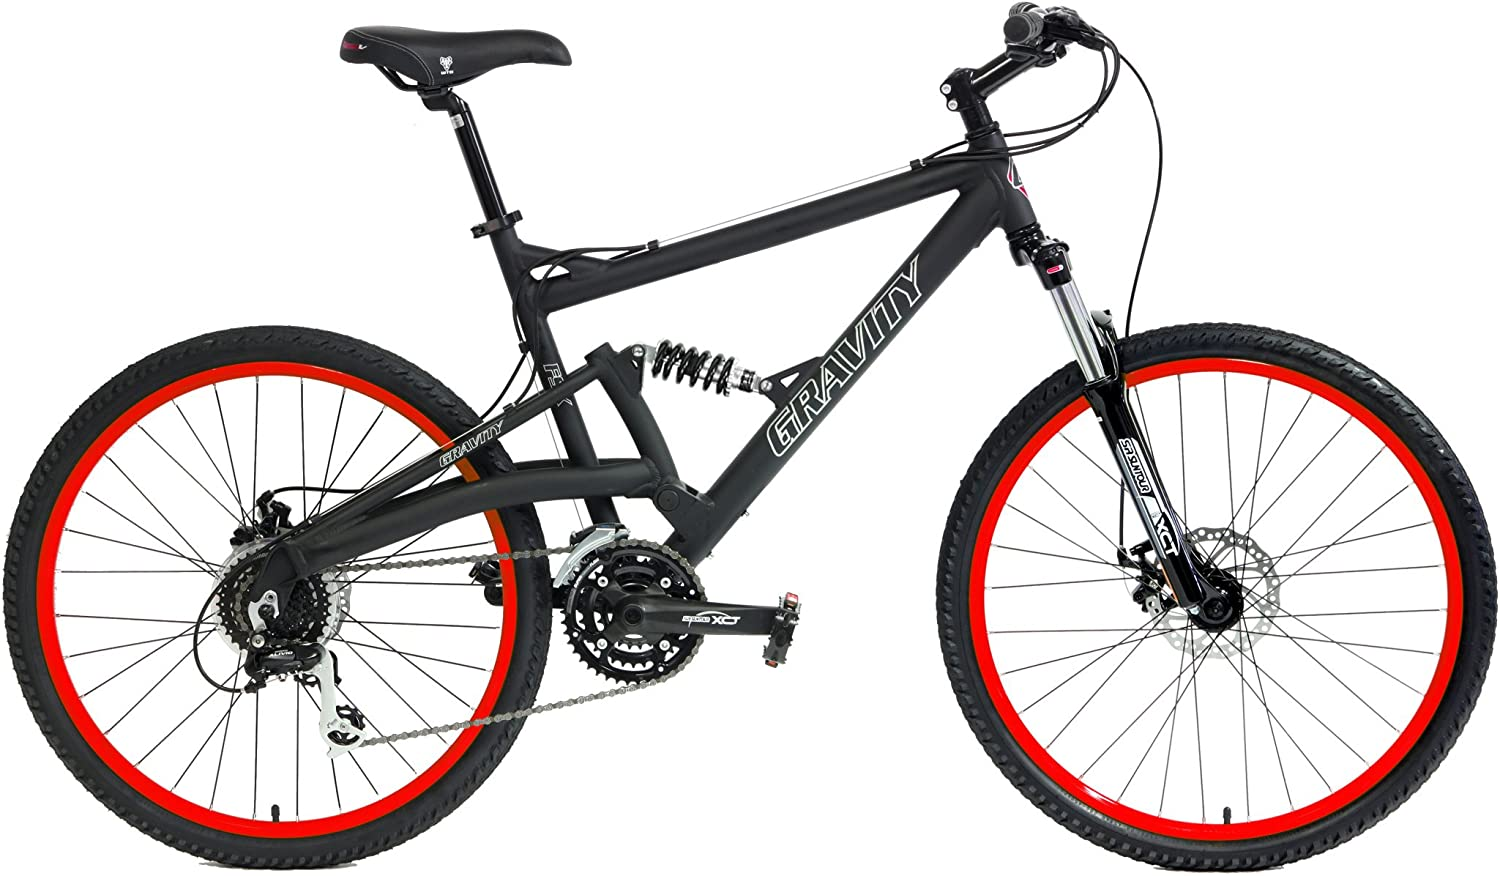 BEIOU Carbon Fiber Mountain Bike Hardtail MTB Shimano M6000 DEORE 30 Speed Ultralight 10.65 kg RT 26 Professional Internal Cable Routing Toray T800 Carbon Hubs Glossy CB018